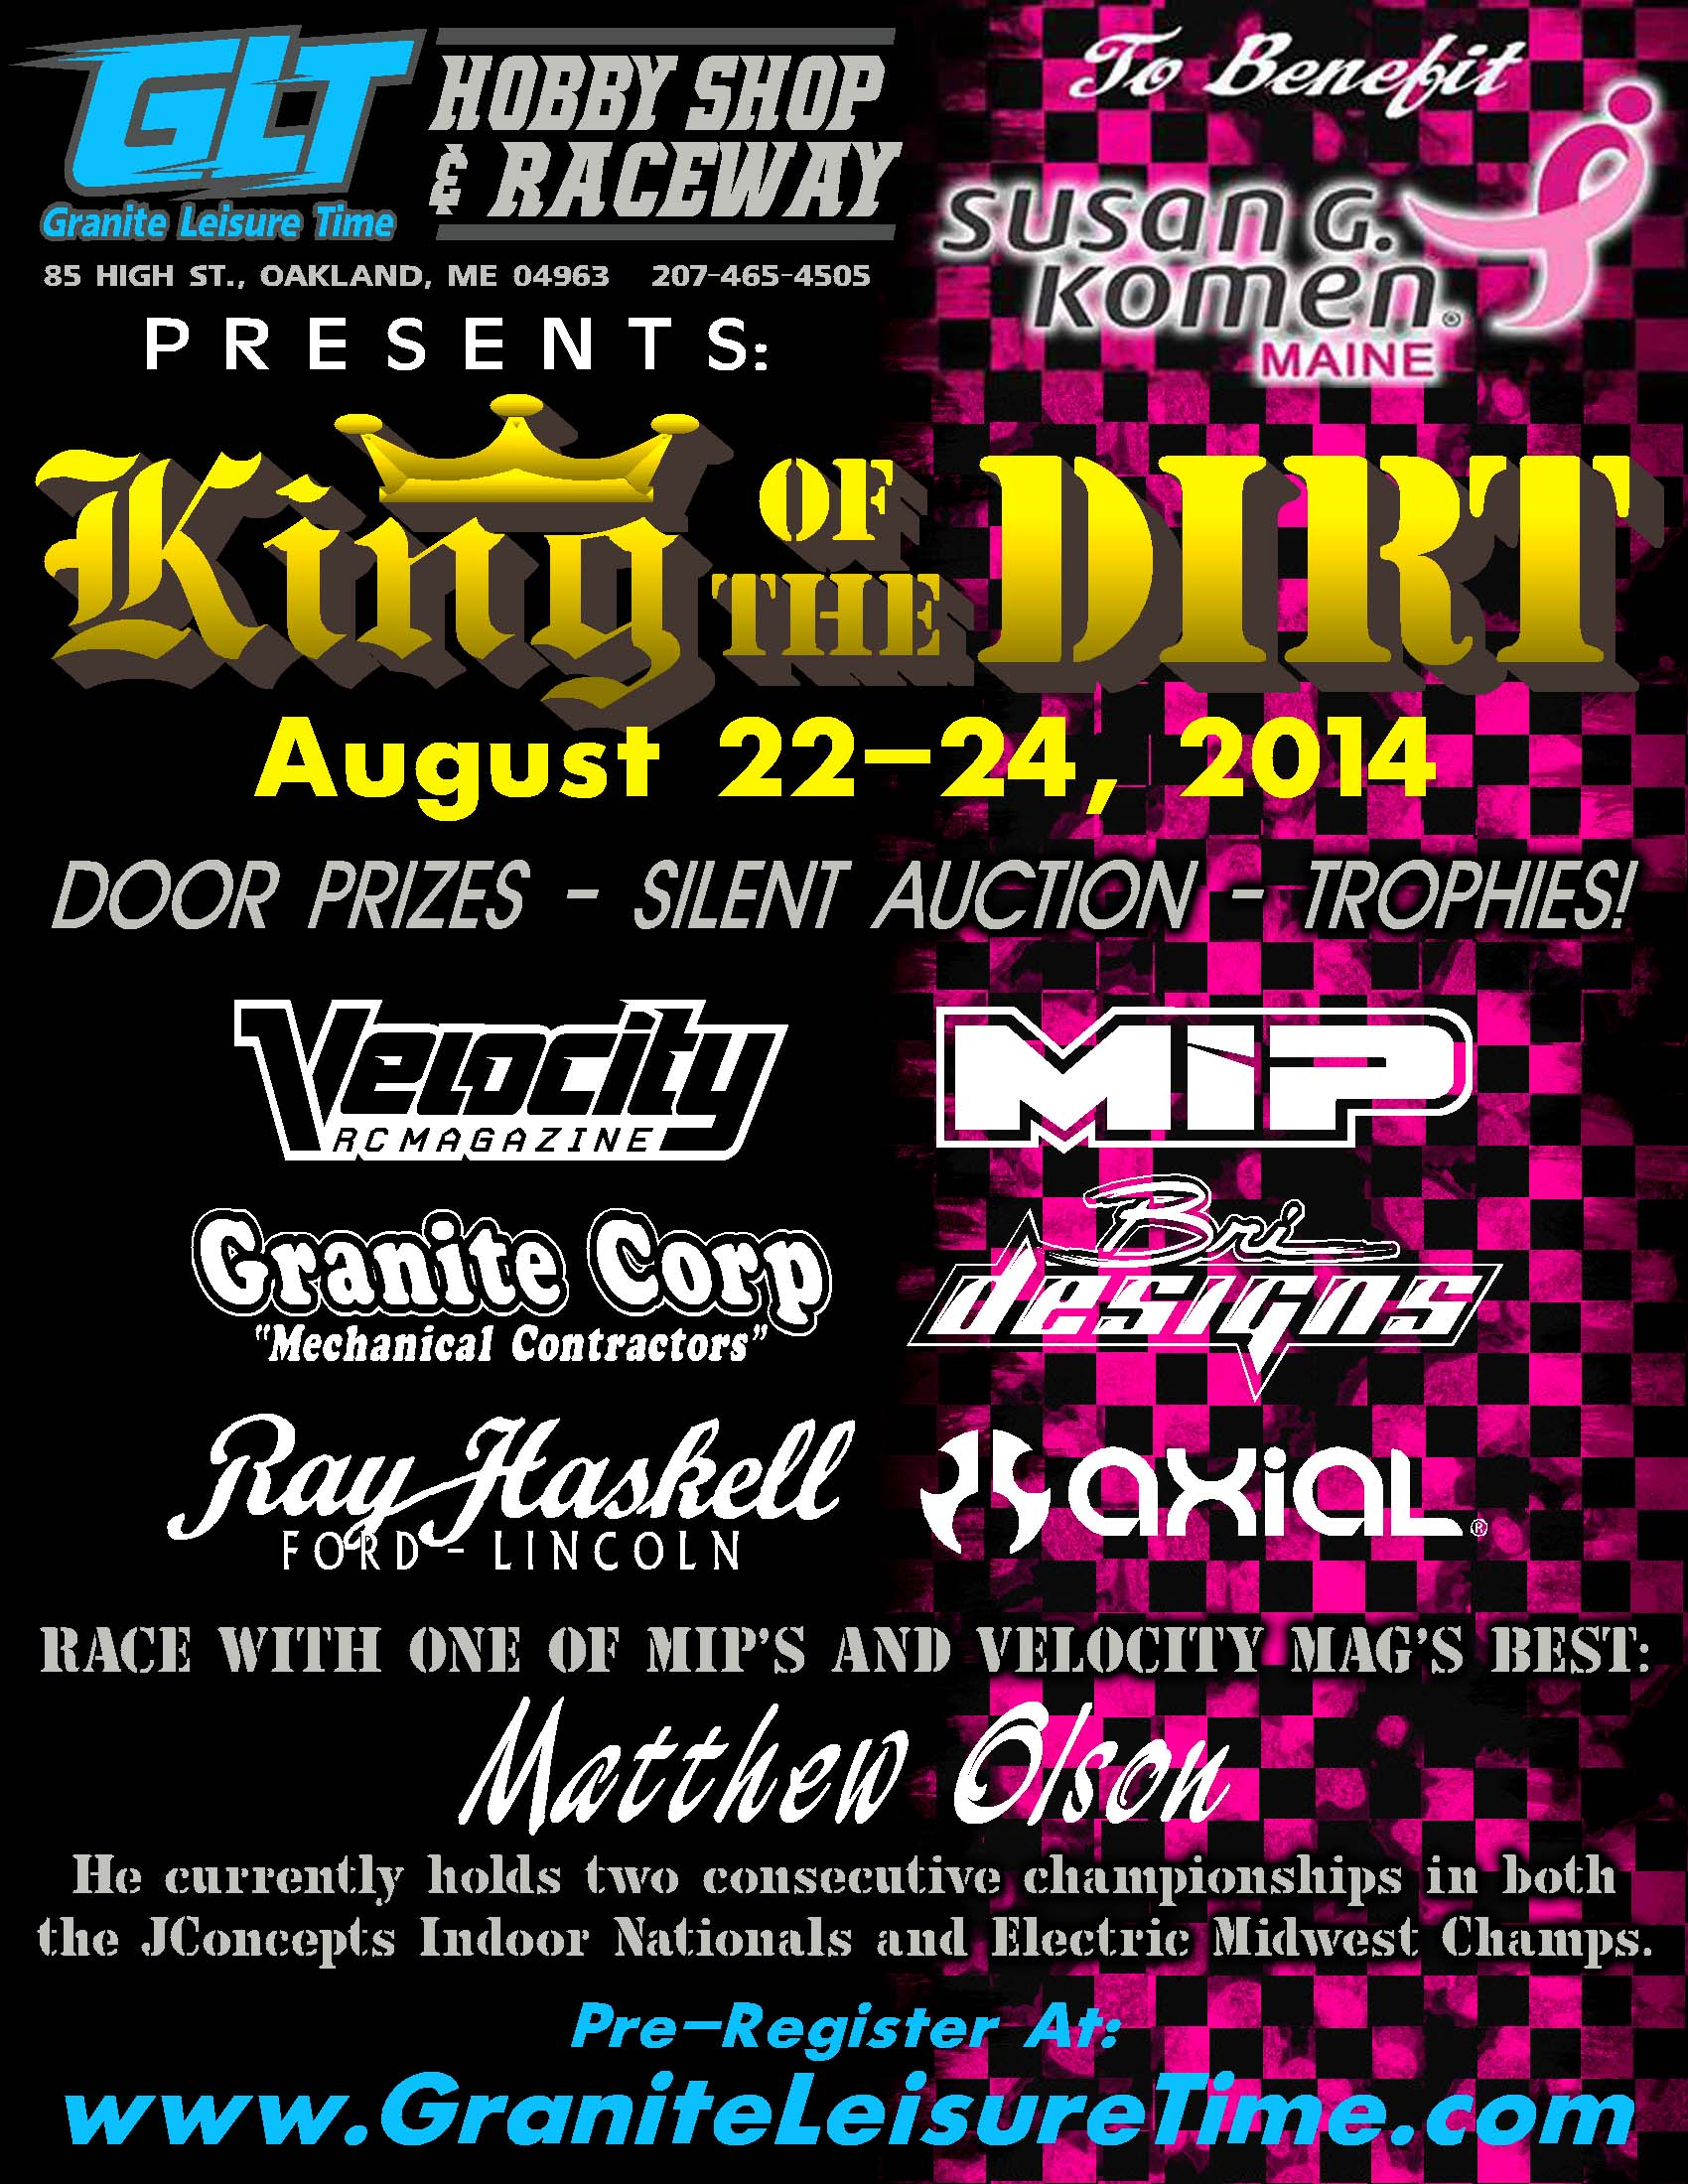 King of the Dirt 2014 revised date